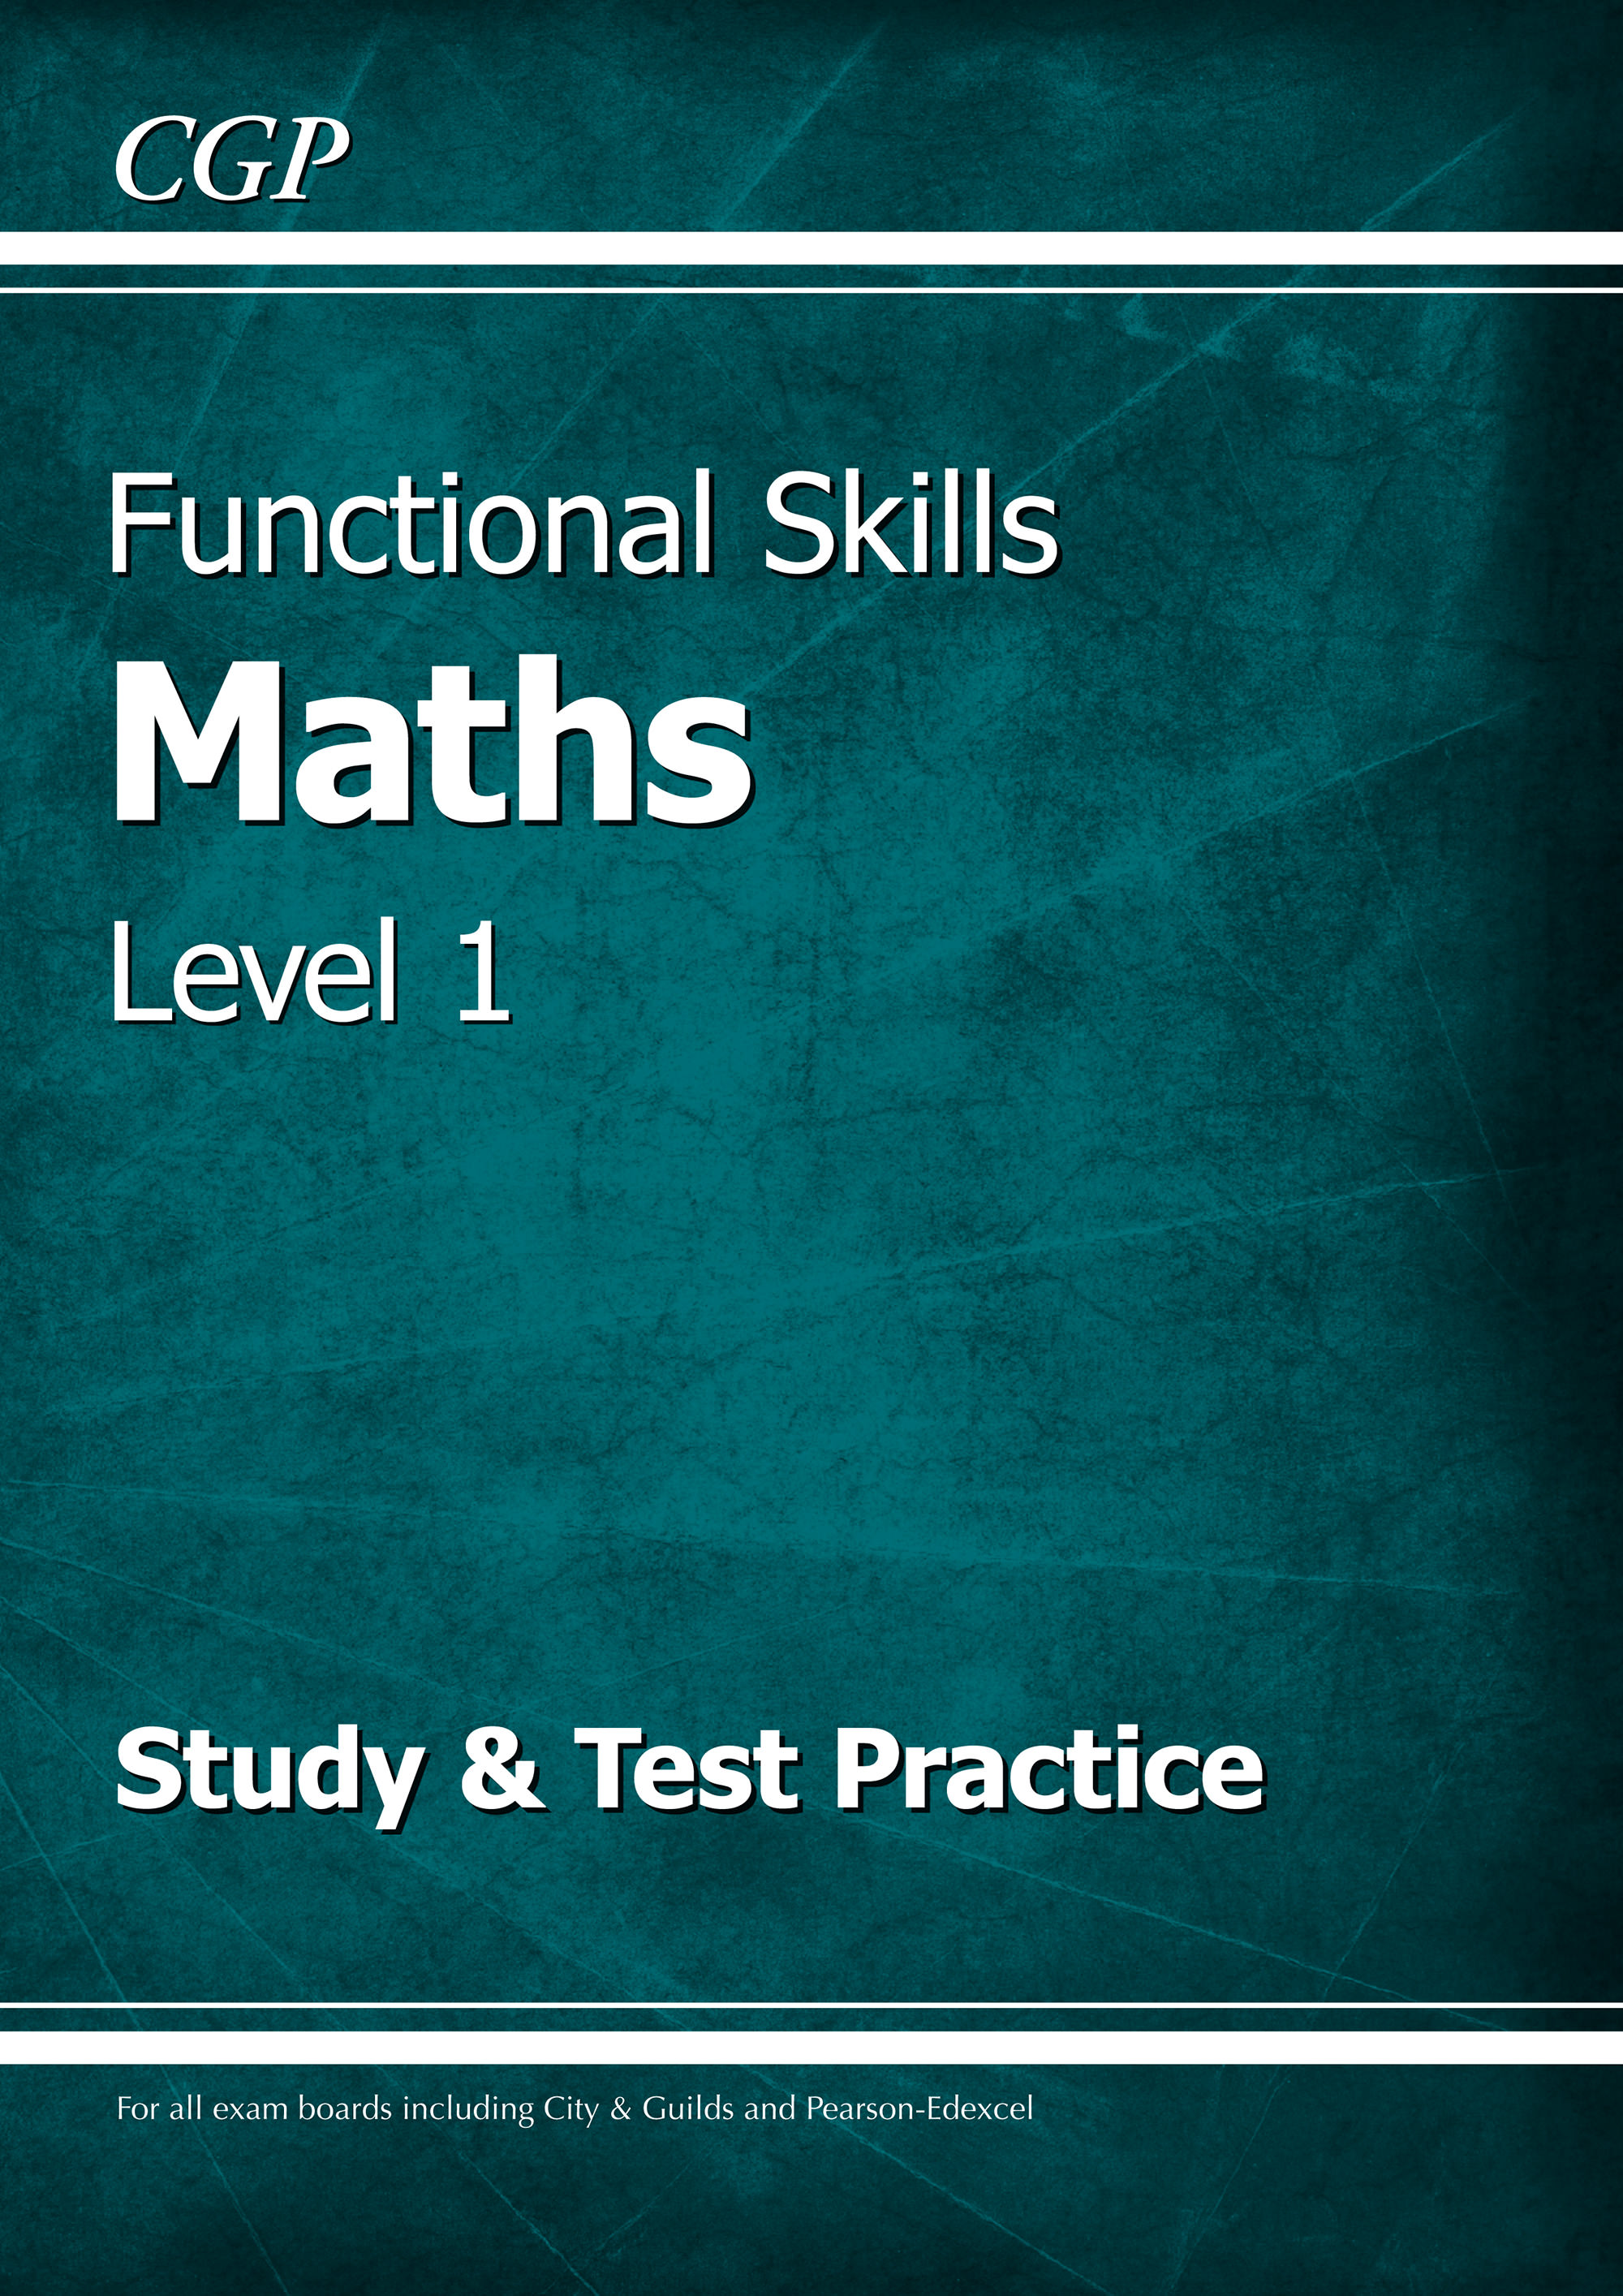 M1SRA2 - Functional Skills Maths Level 1 - Study & Test Practice